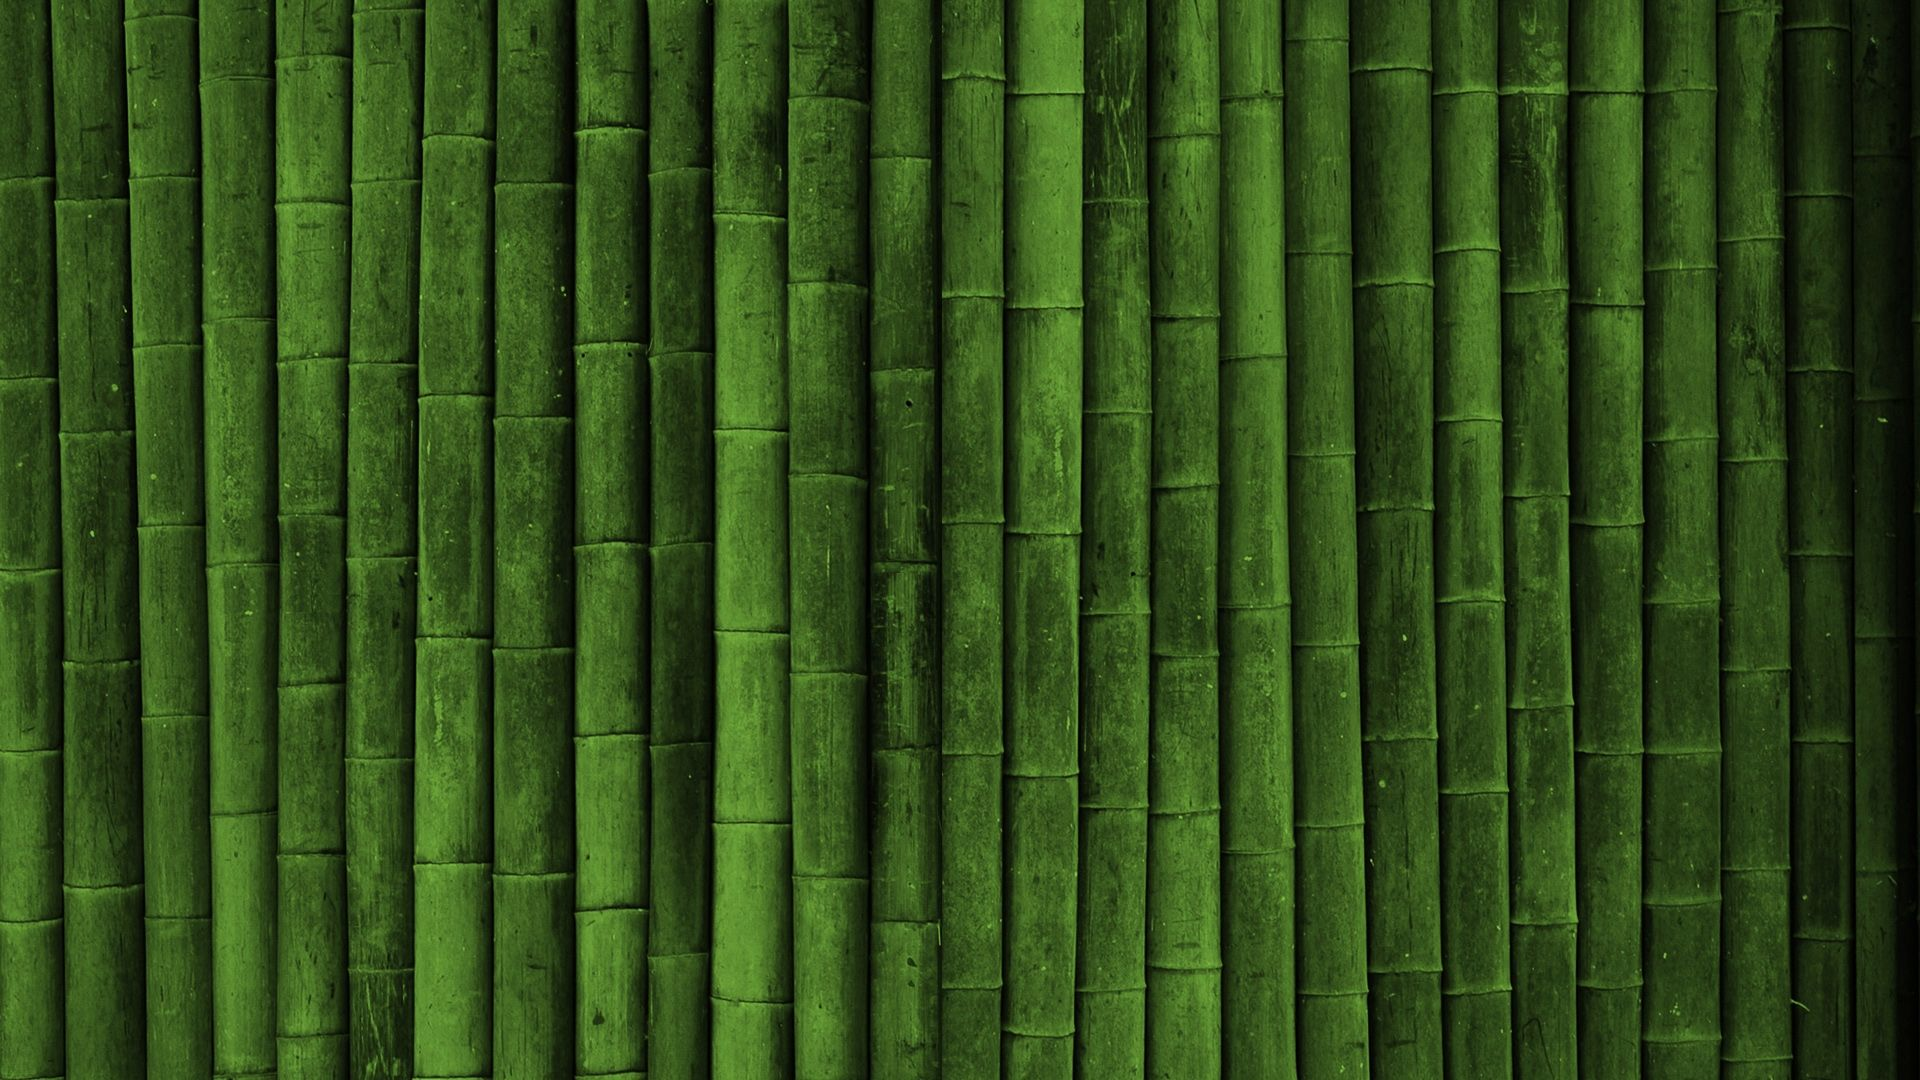 Free-Download-HD-Green-for-Windows-and-Mac-Systems-1920×1080-Green-HD-Backgrounds-W-wallpaper-wp3405876